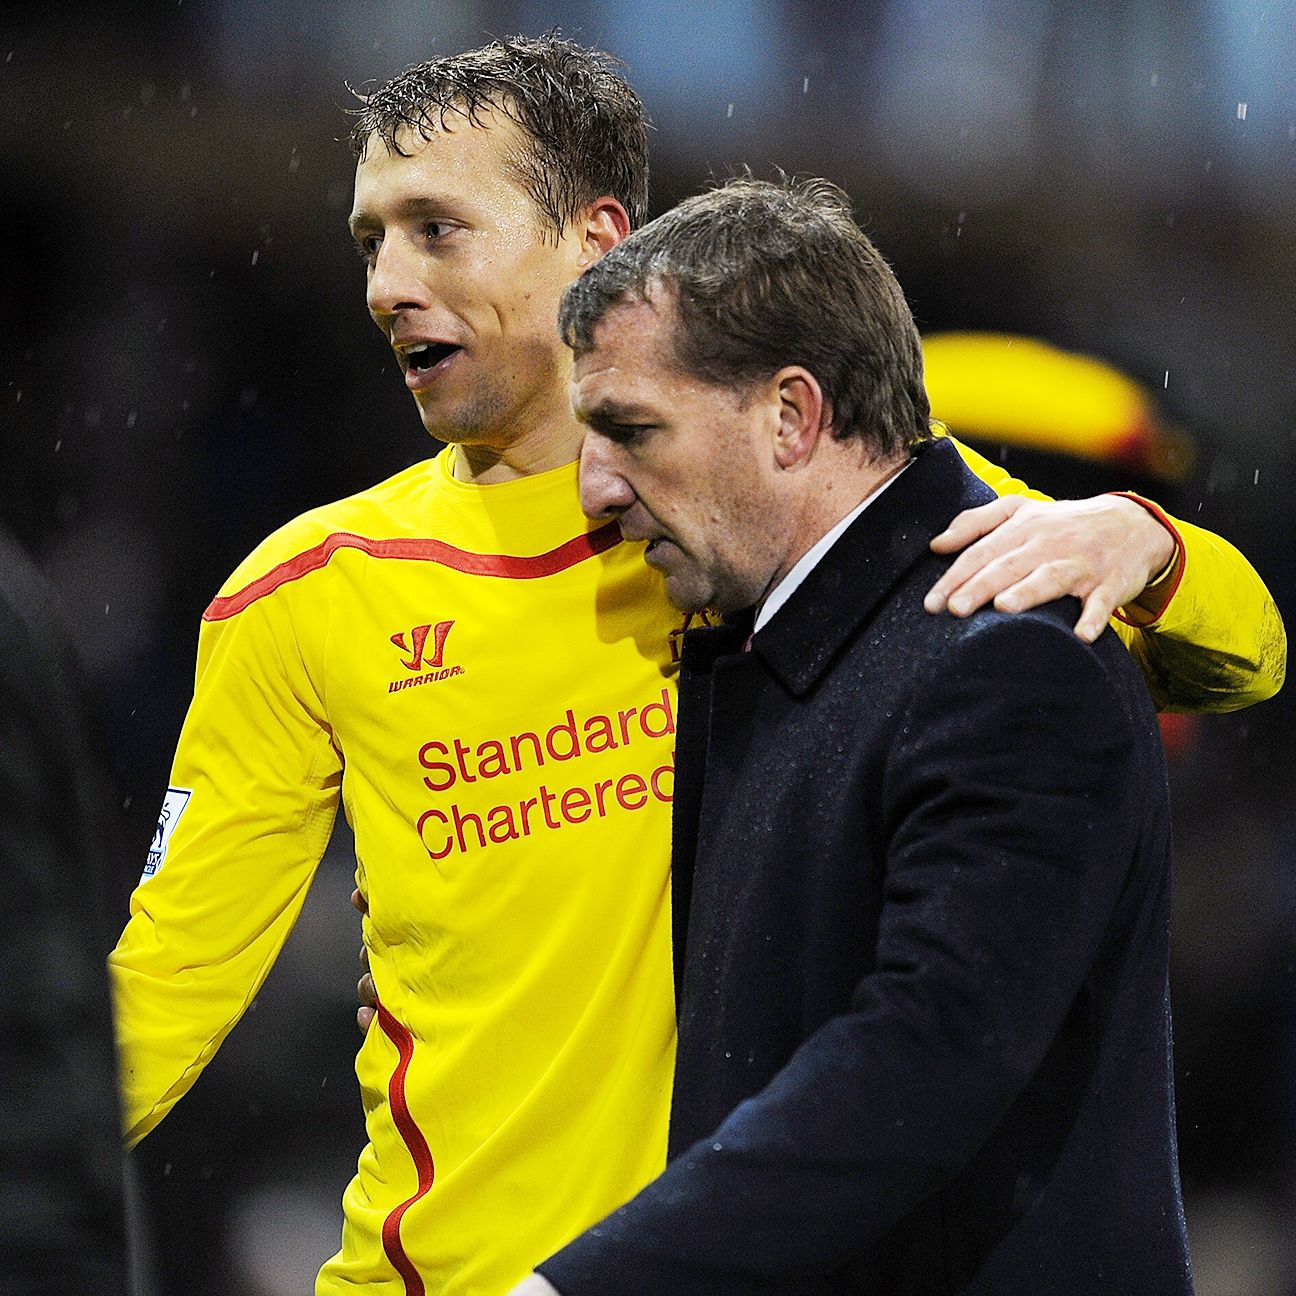 Brendan Rodgers' reluctance to select Lucas Leiva in recent seasons has opened the door to a likely exit.